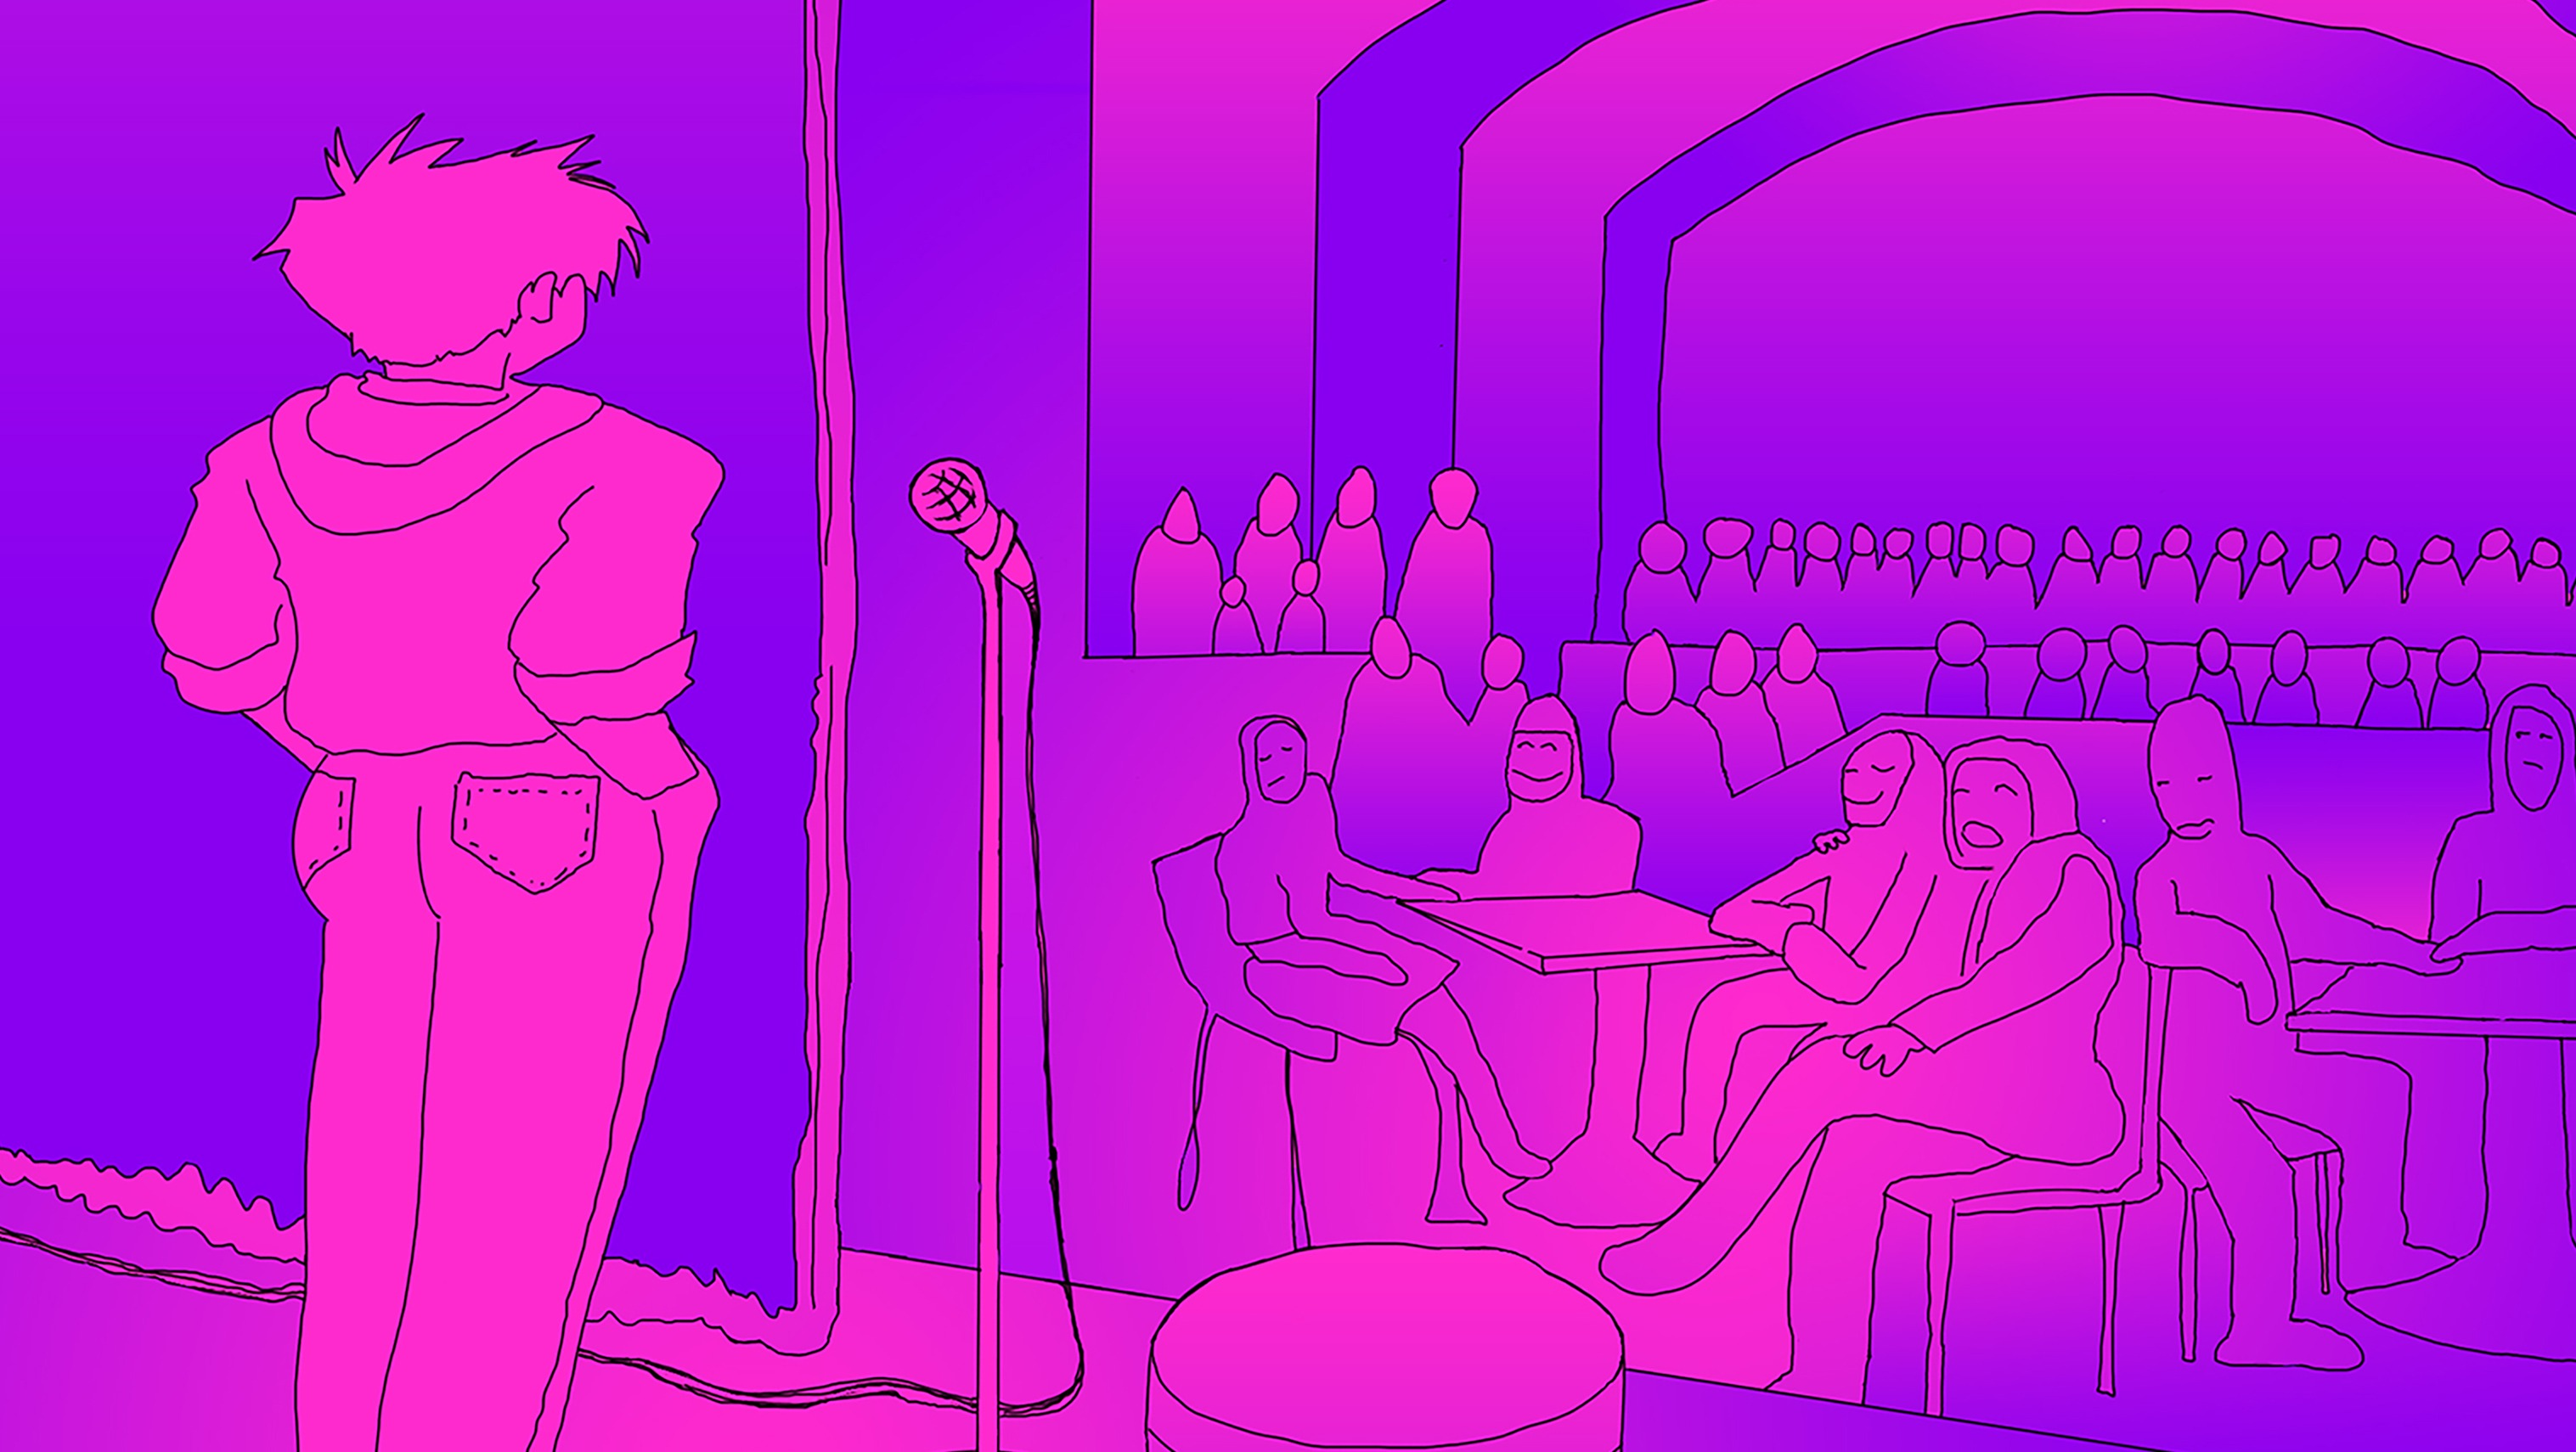 person standing in front of a crowd.  Purple and pink illustration.